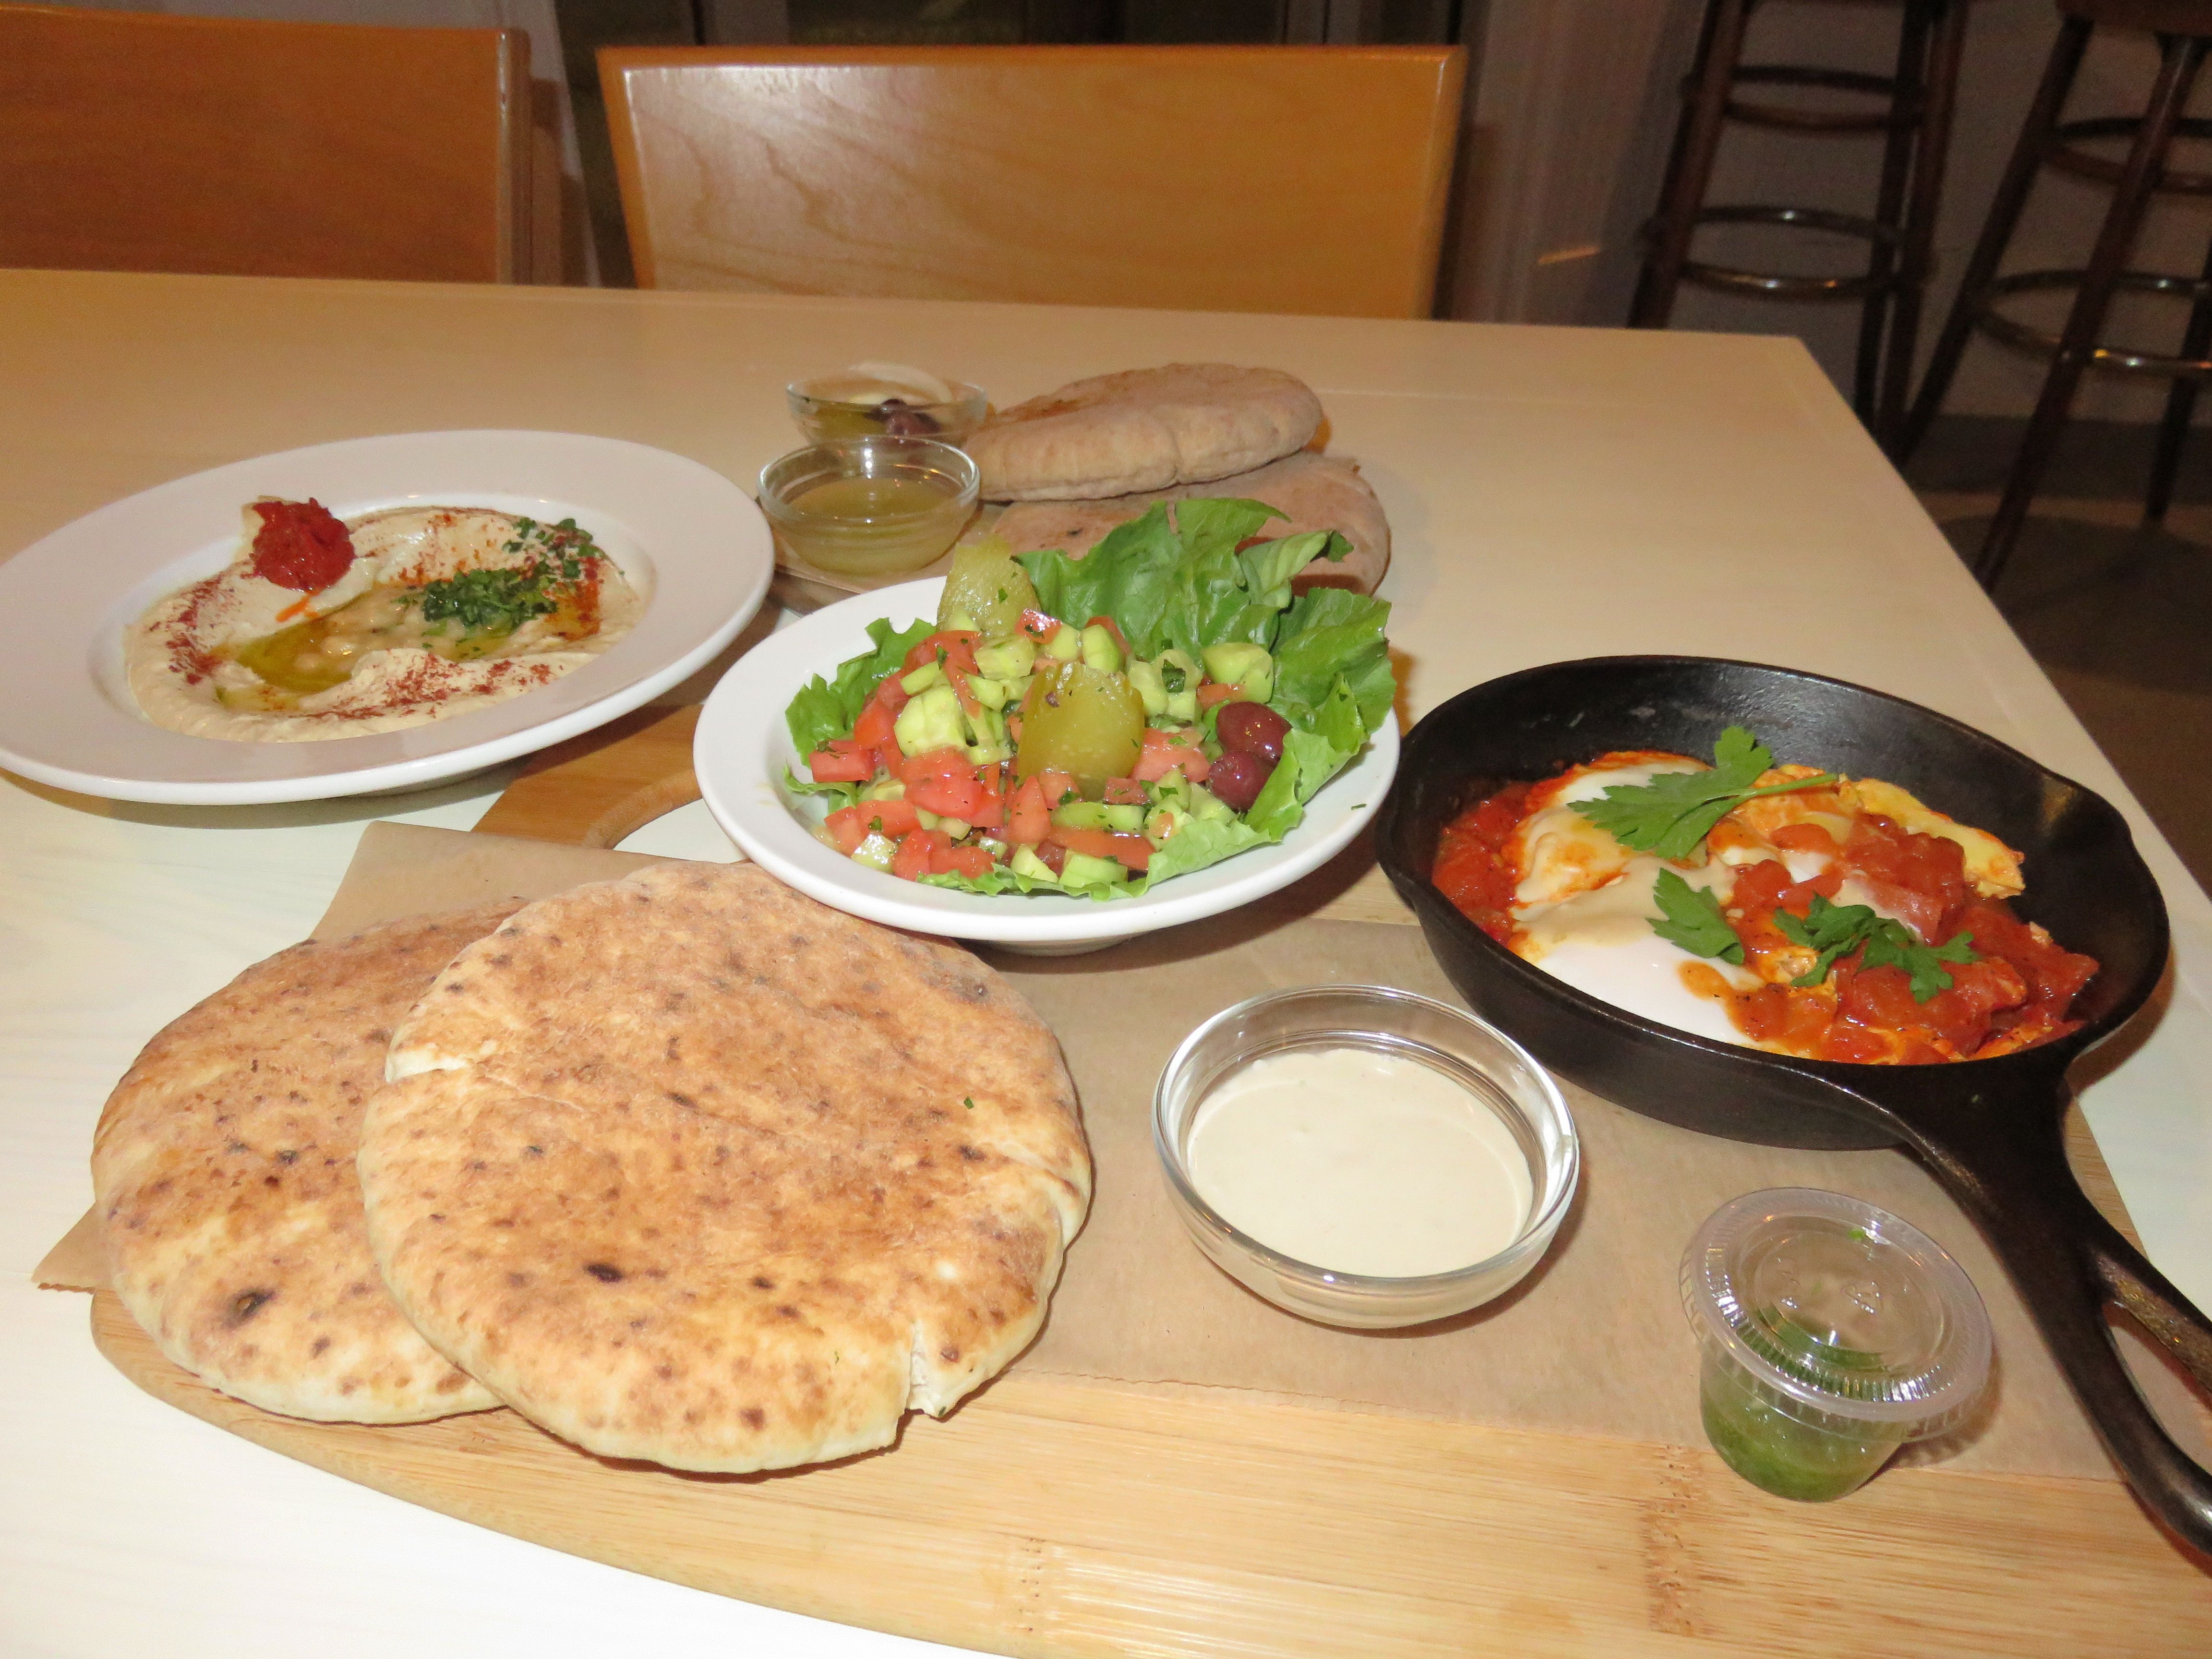 Tal S Hummus Doubles Number Of Israeli Restaurants Here Crescent City Jewish News